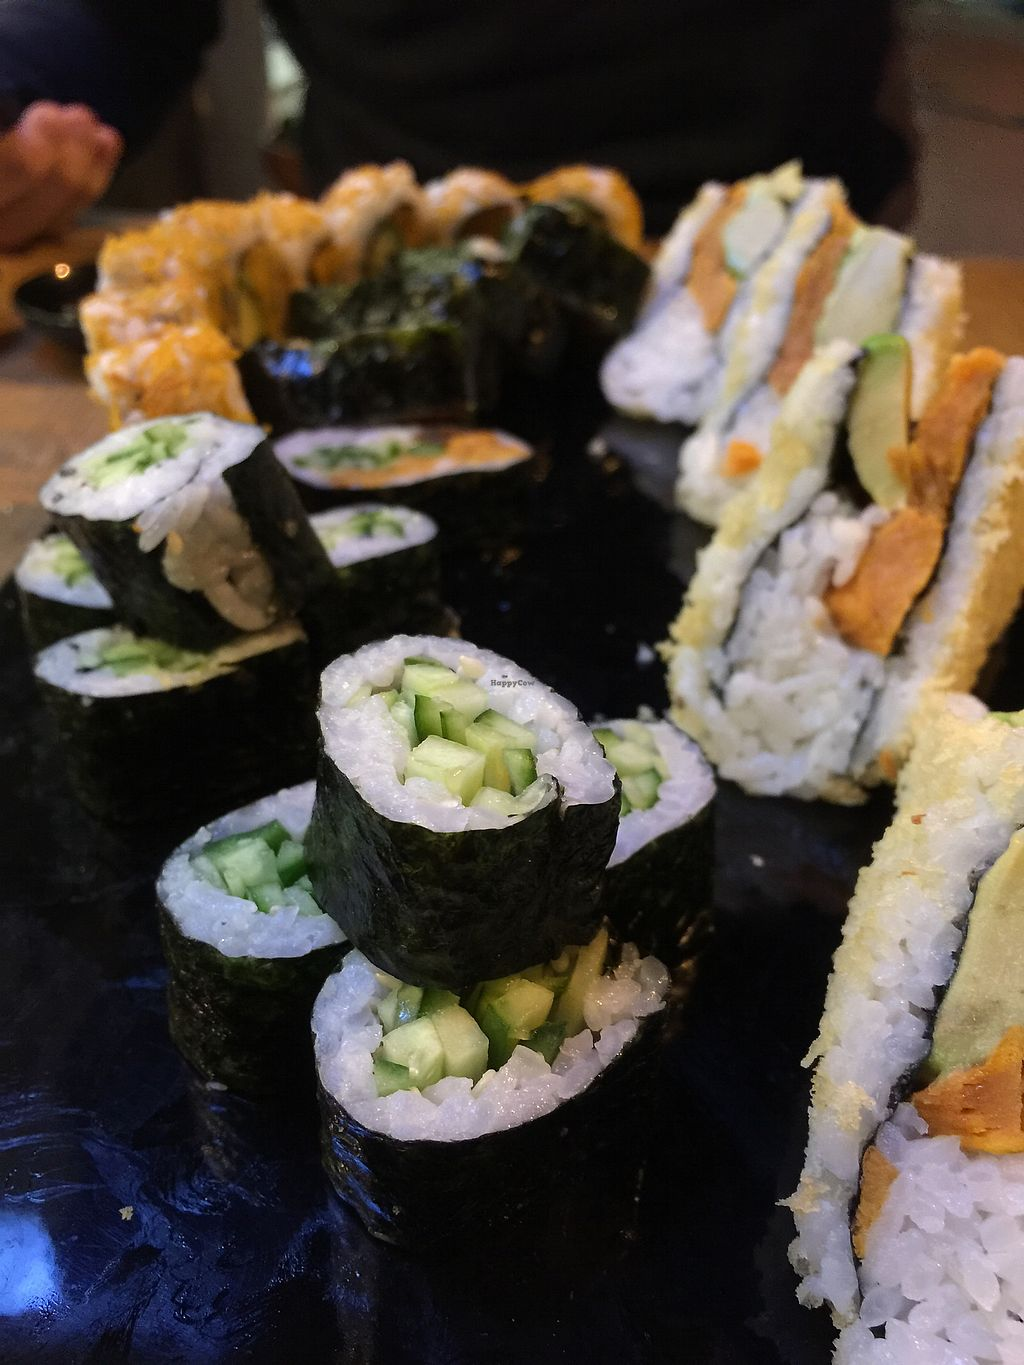 """Photo of The Green Roll  by <a href=""""/members/profile/Starrynita"""">Starrynita</a> <br/>sushi with cucumber ans sweet-potato <br/> March 5, 2018  - <a href='/contact/abuse/image/53638/367078'>Report</a>"""